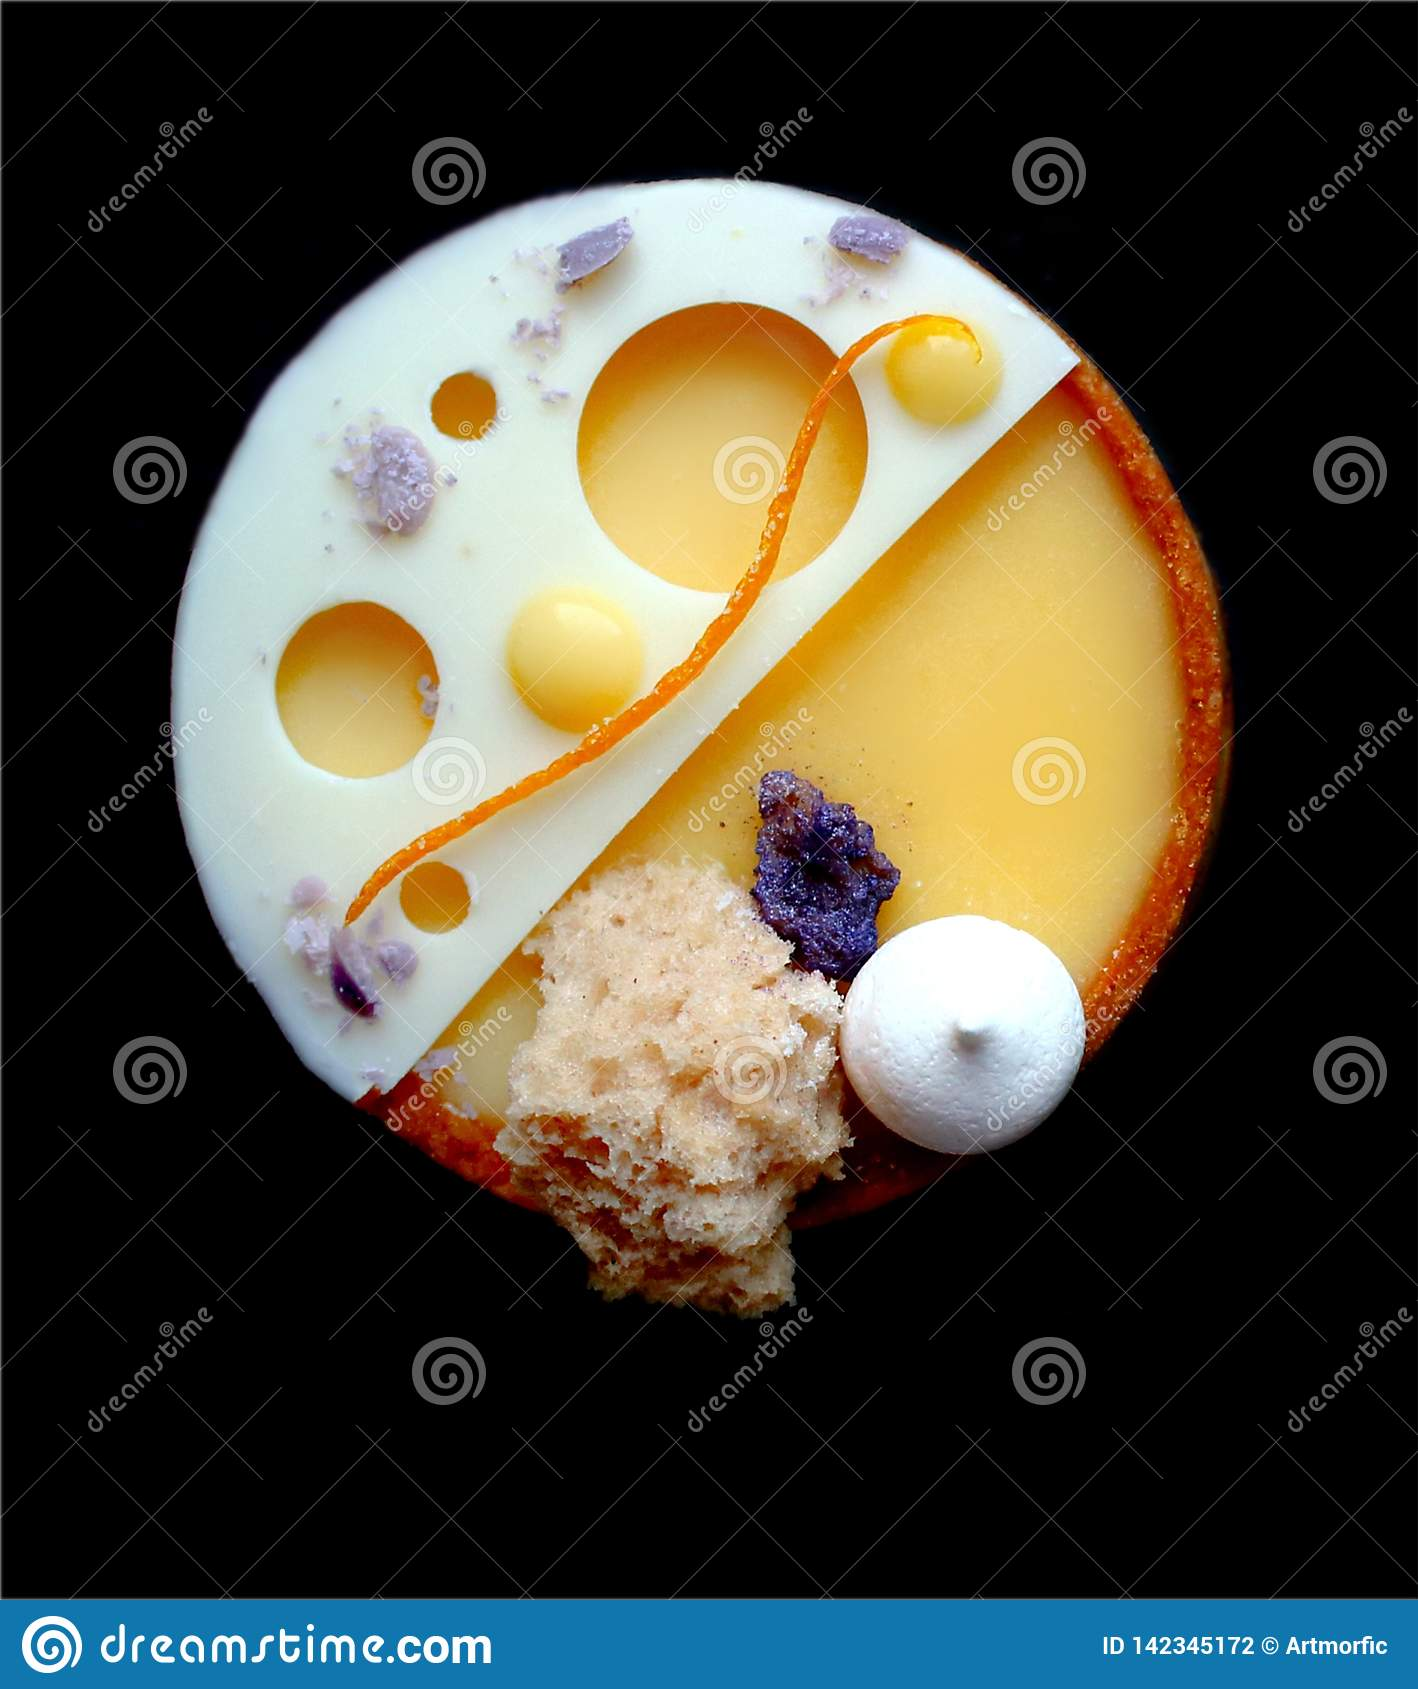 Bright orange tart with meringues, microwave sponge and white chocolate on black background